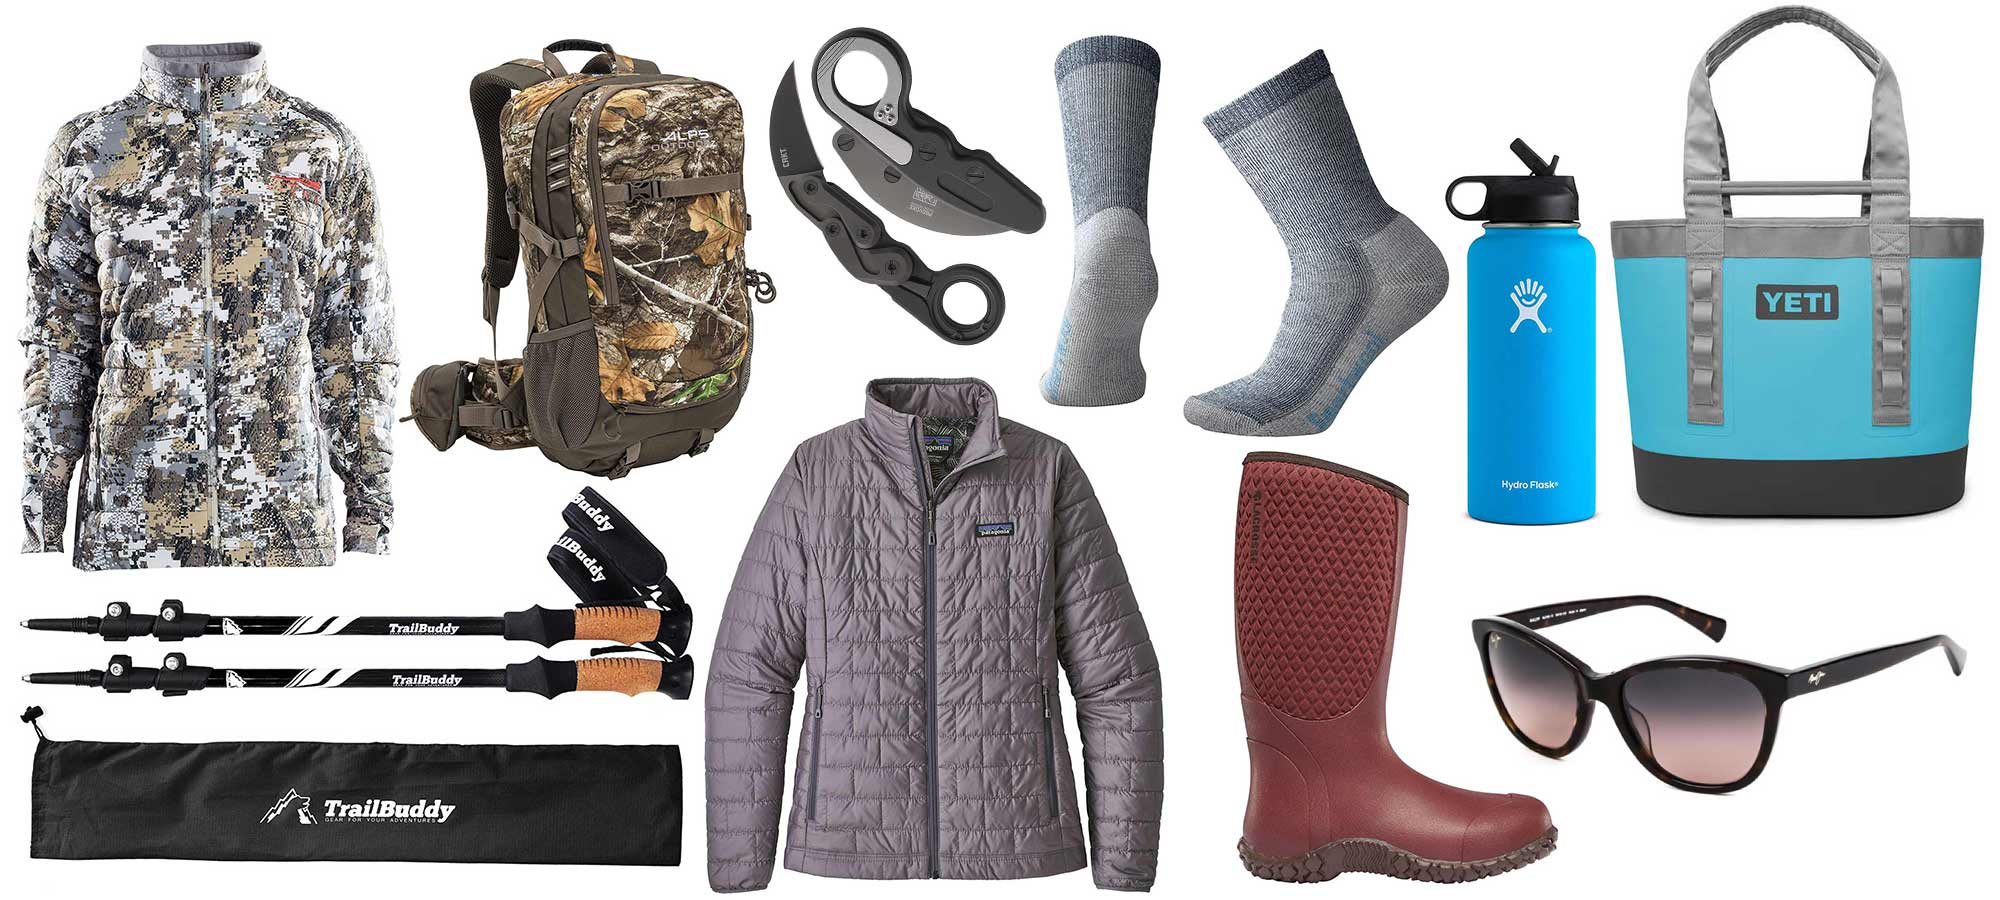 The 2019 Outdoor Life Mother's Day Gift Guide